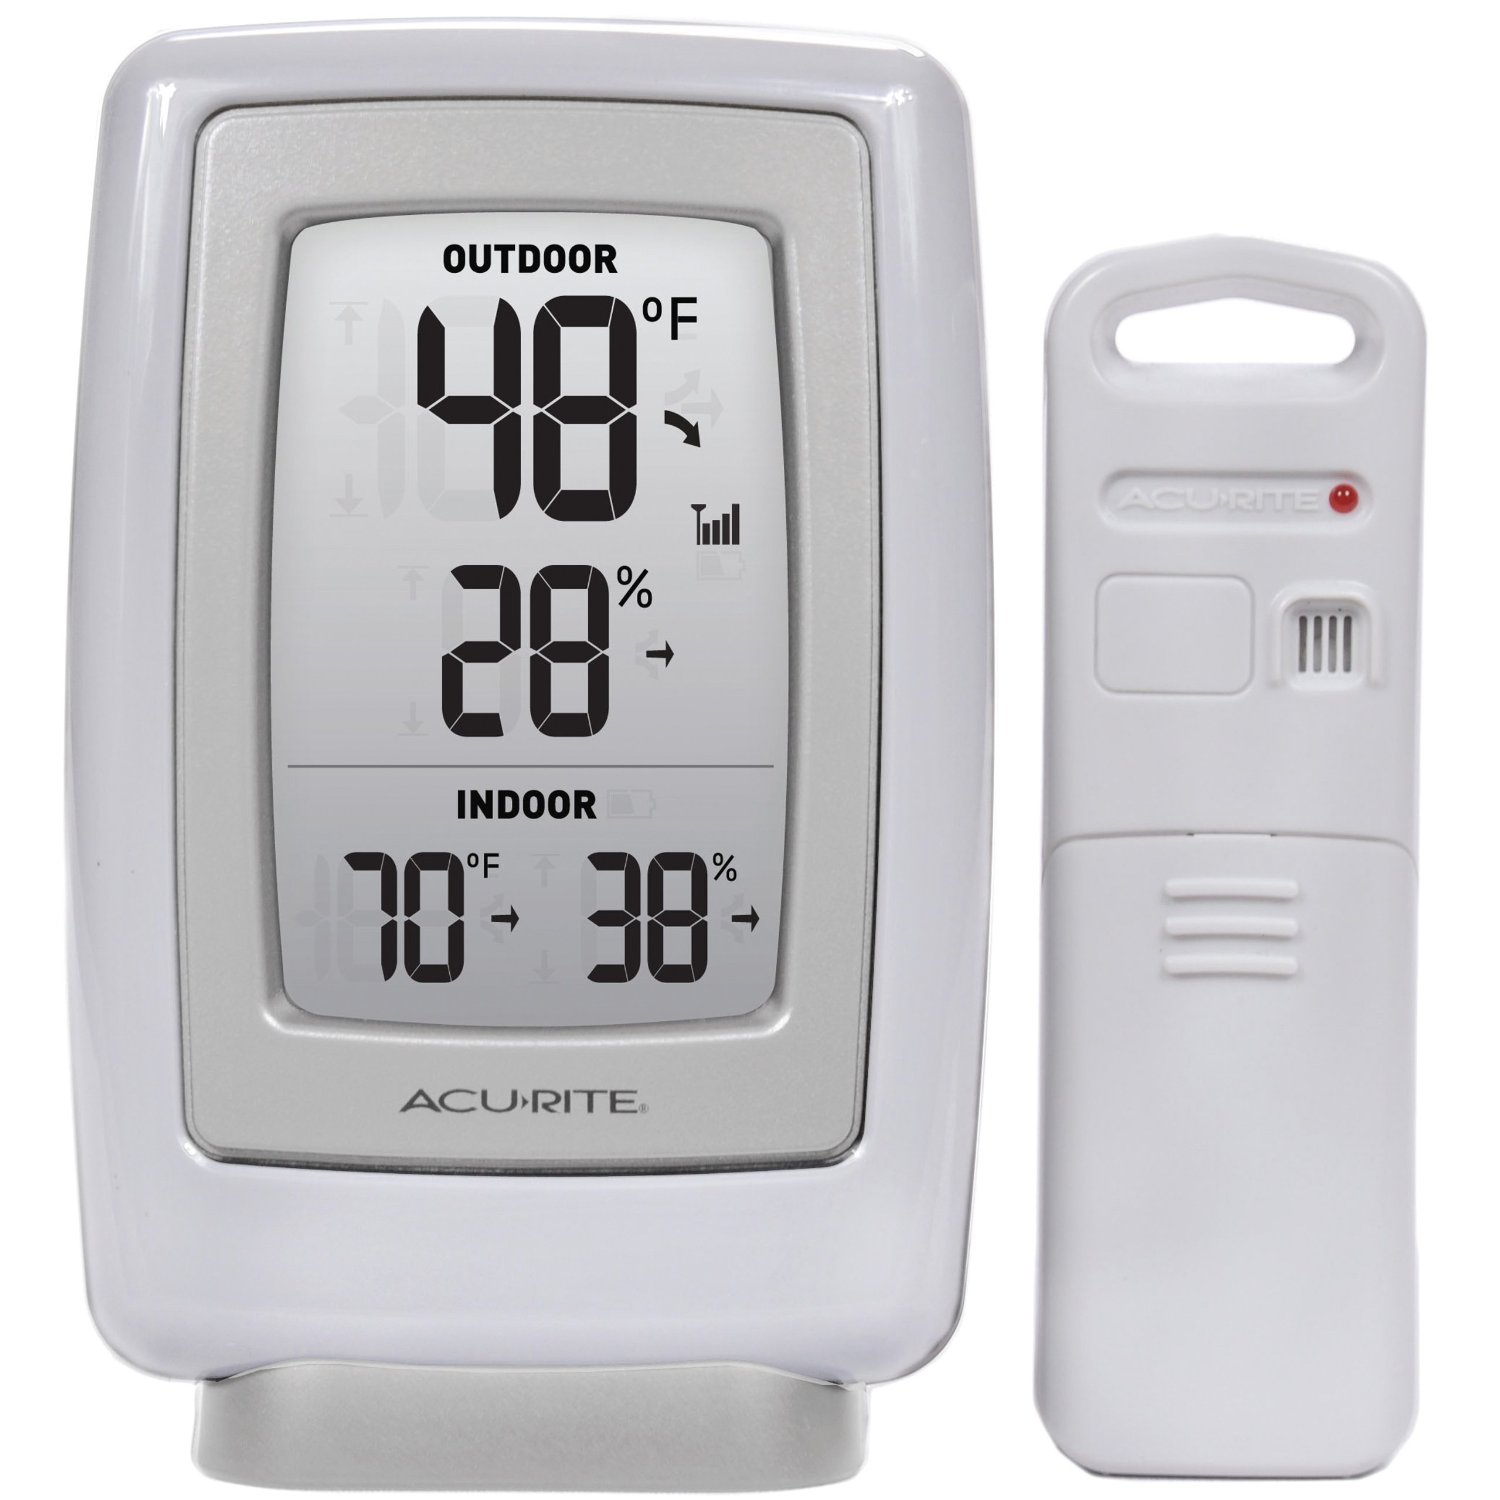 Acurite 00782a2 Wireless Indoor Outdoor Thermometer Manual Guide